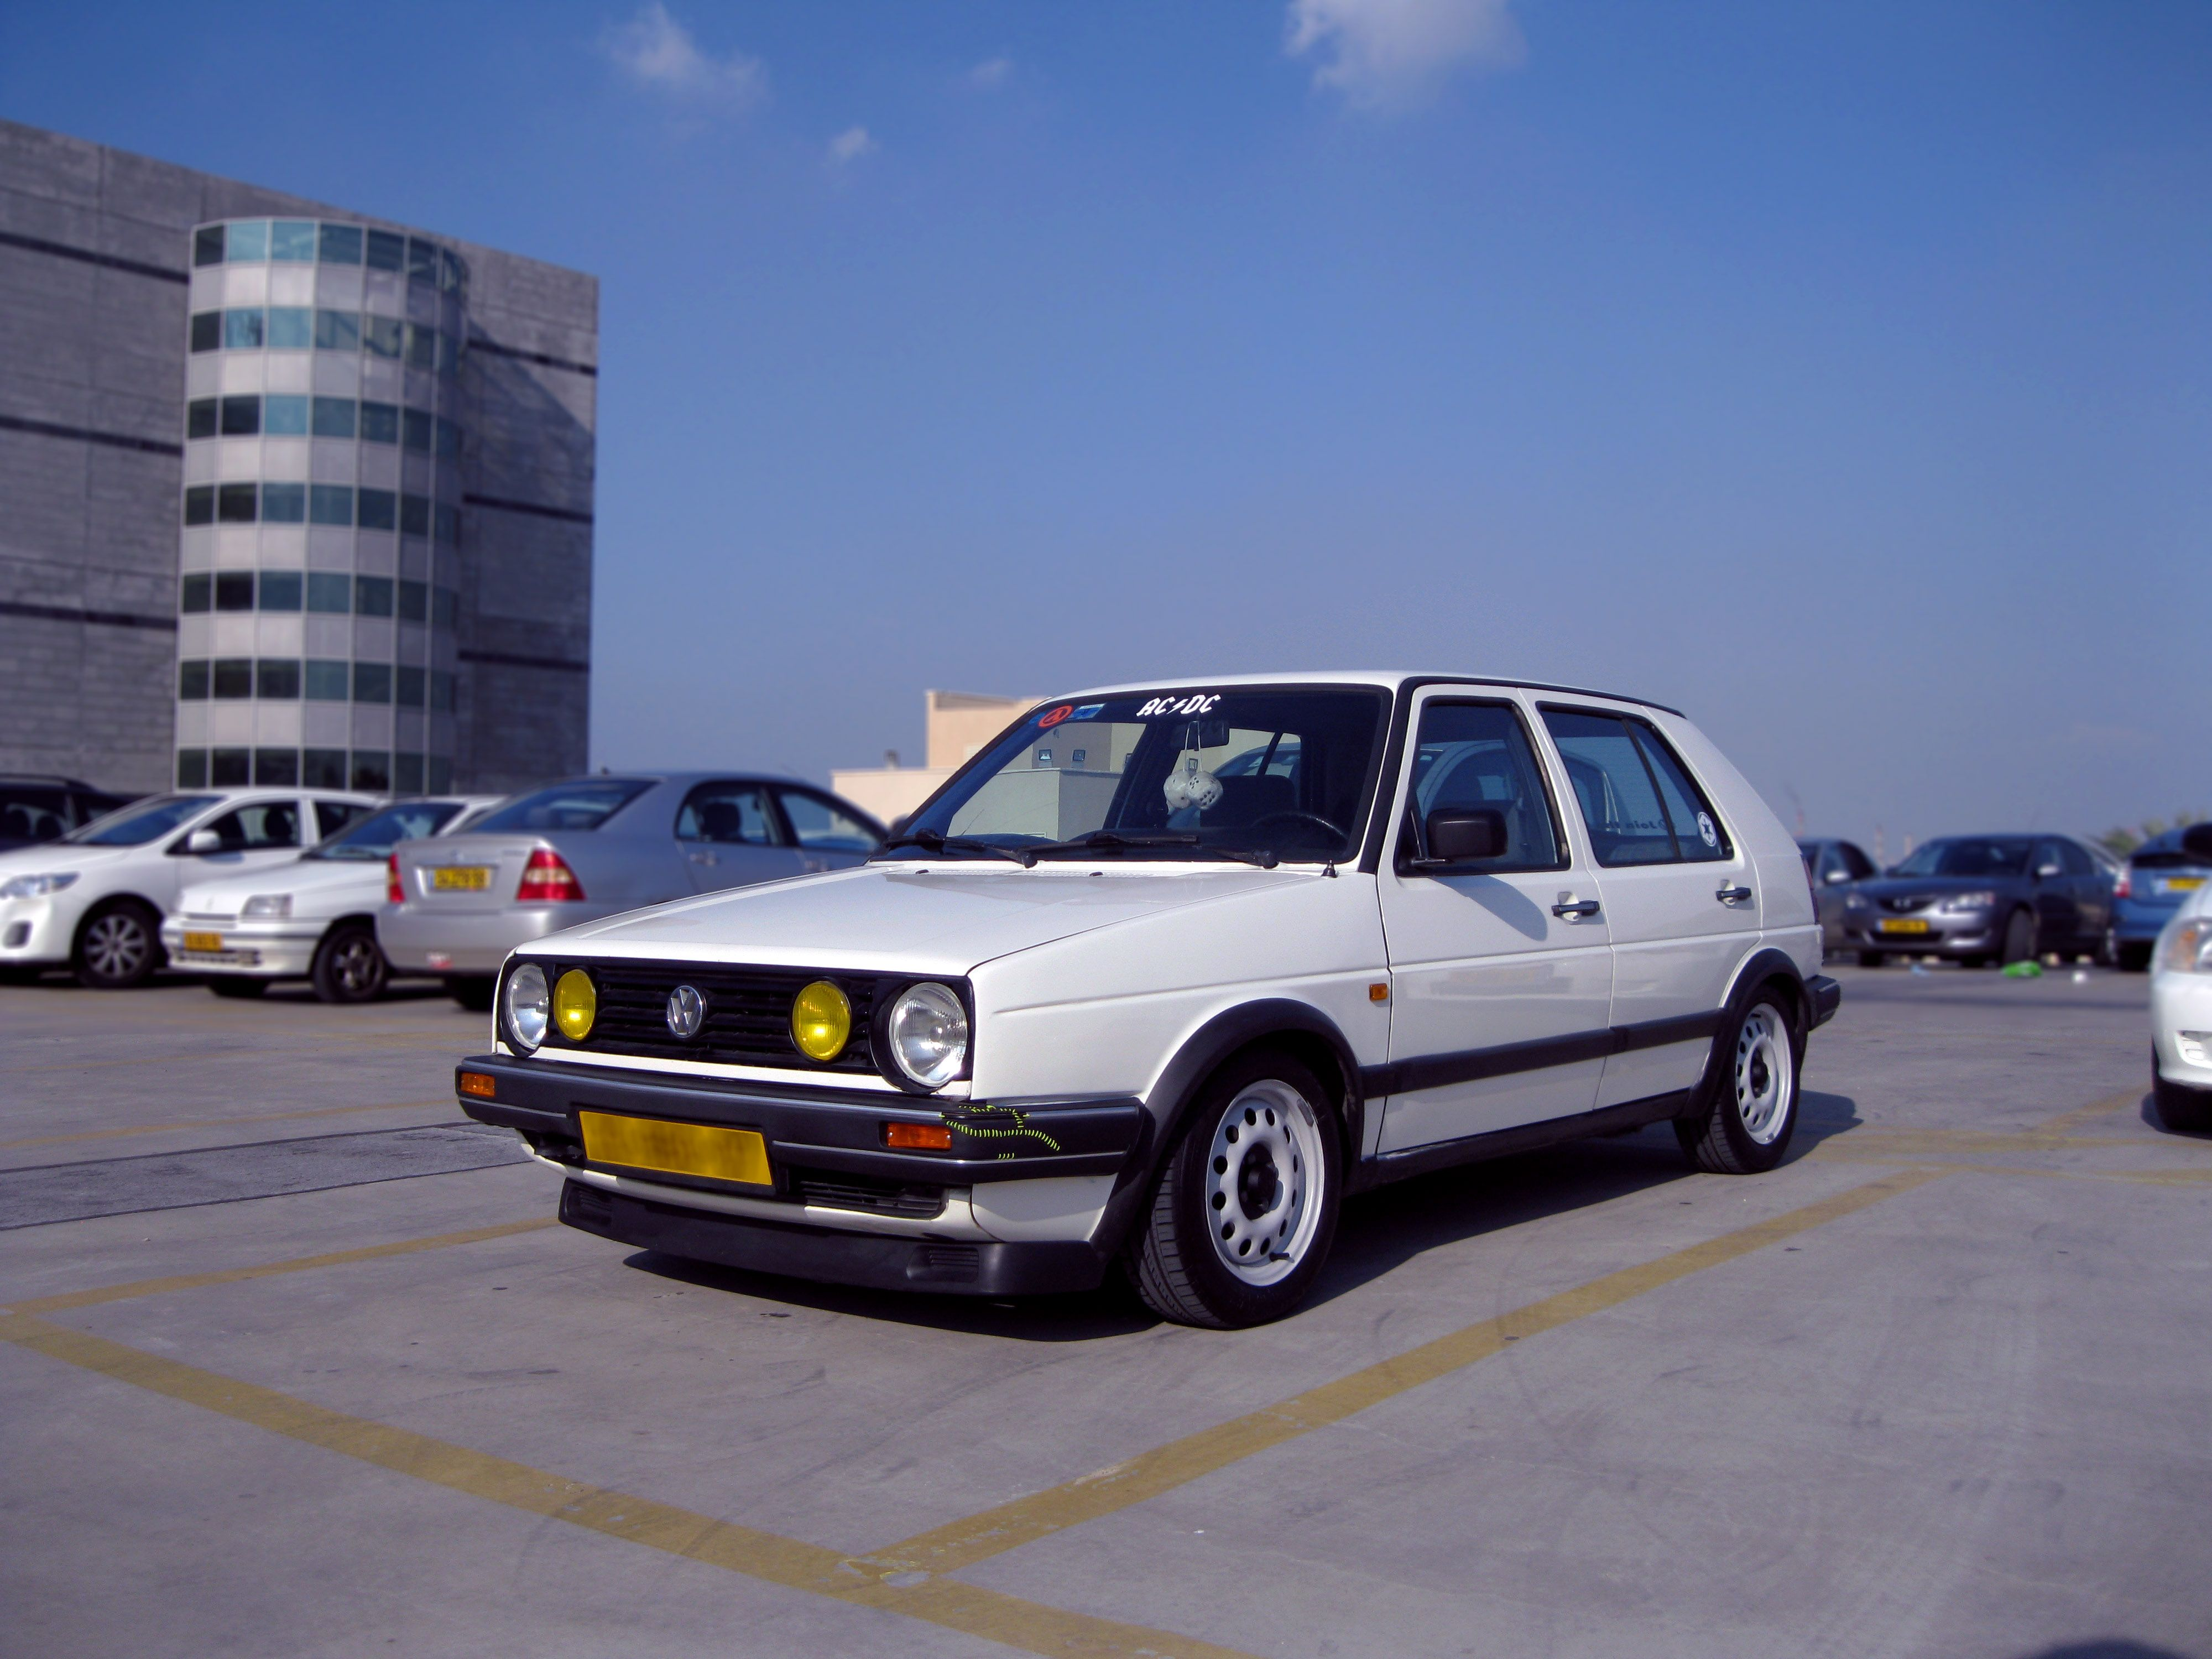 white golf mk2 1.3 with a stitched front bumper | cars | Pinterest ...